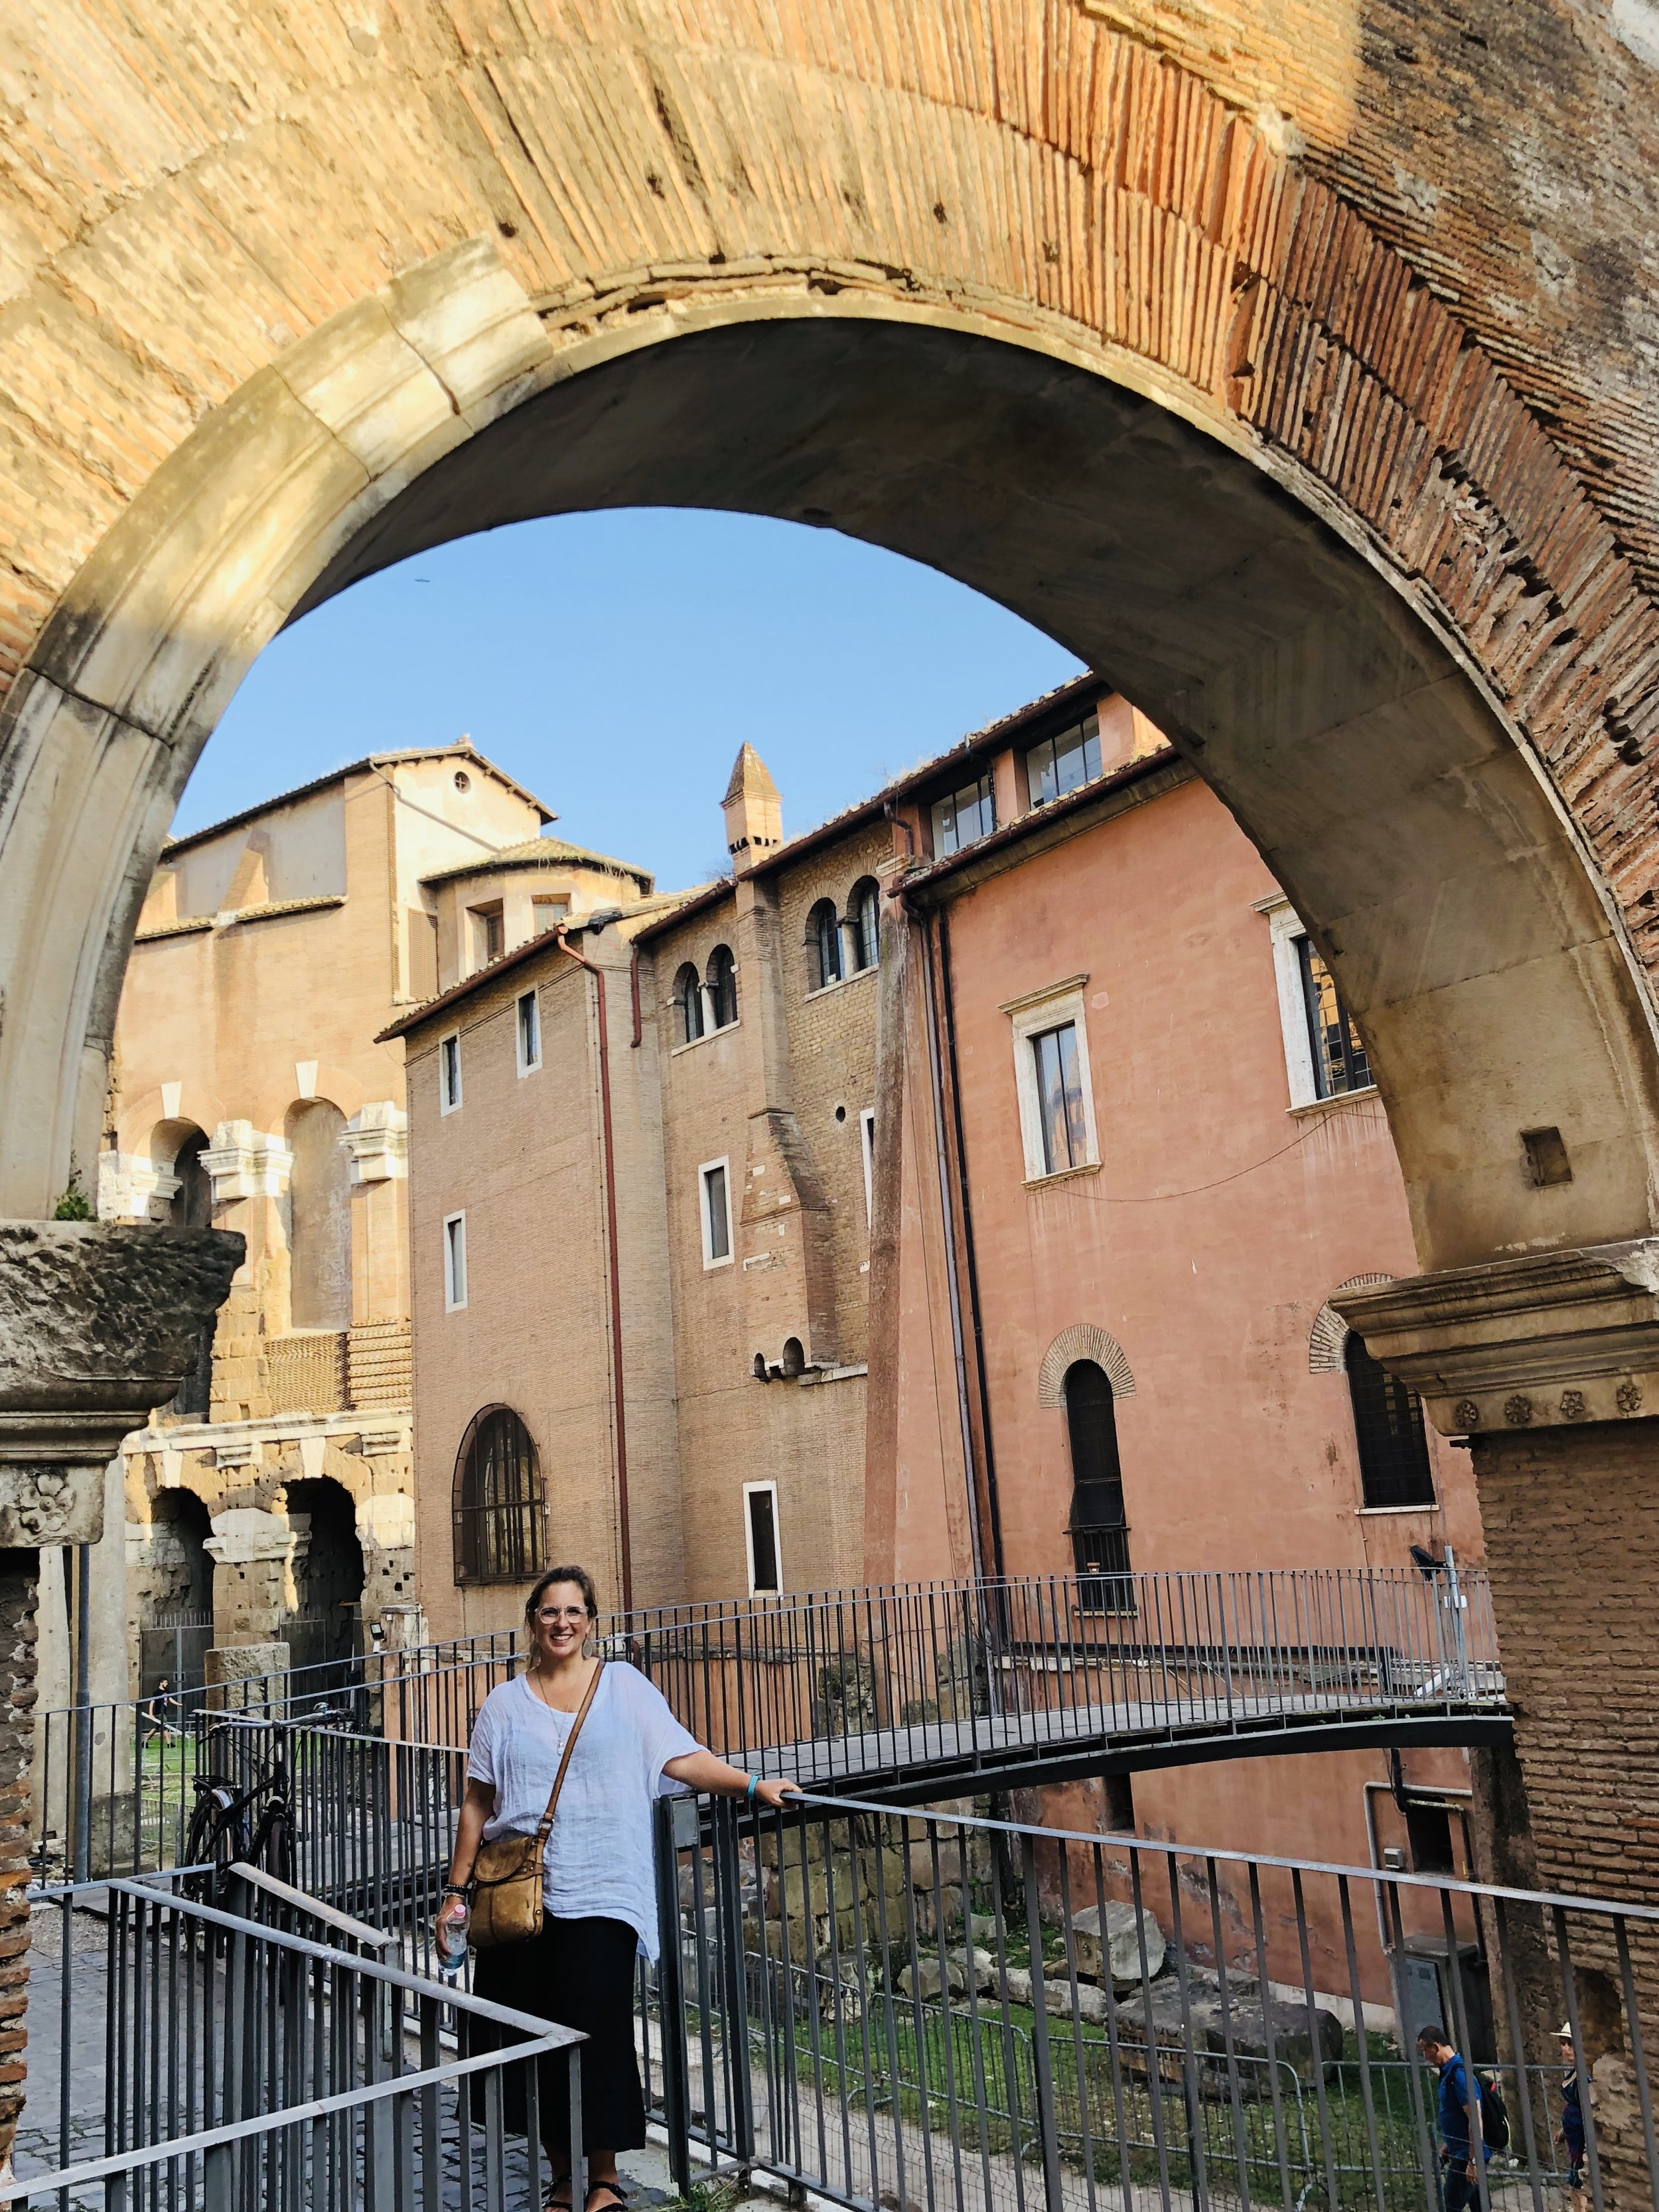 """Roman arches? I must pose for a picture here. """"Take a photo of me Franck! Take a photo of me!""""."""